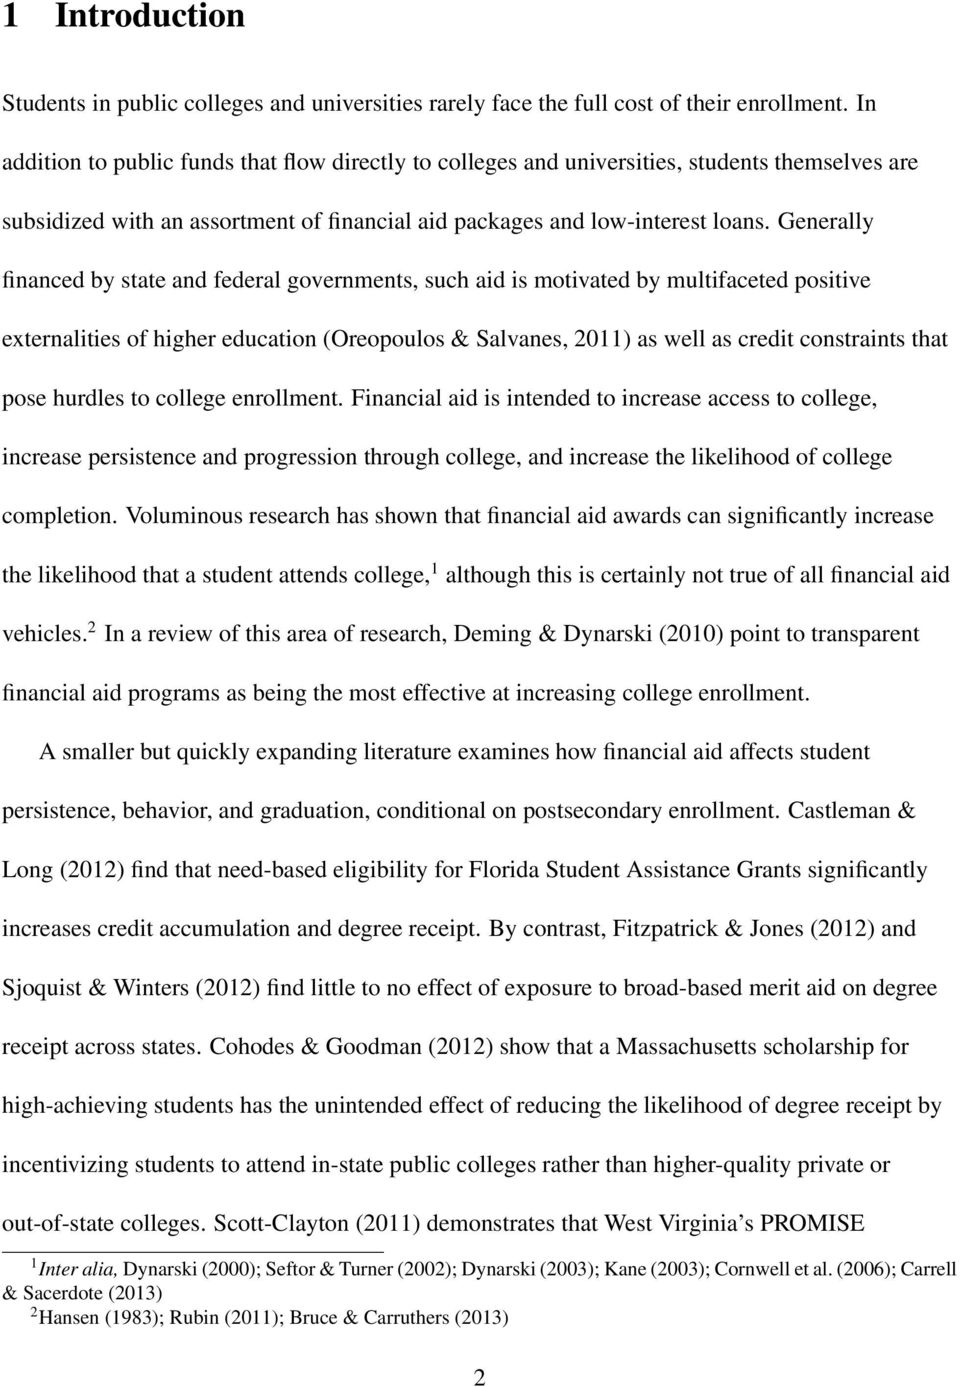 Generally financed by state and federal governments, such aid is motivated by multifaceted positive externalities of higher education (Oreopoulos & Salvanes, 2011) as well as credit constraints that